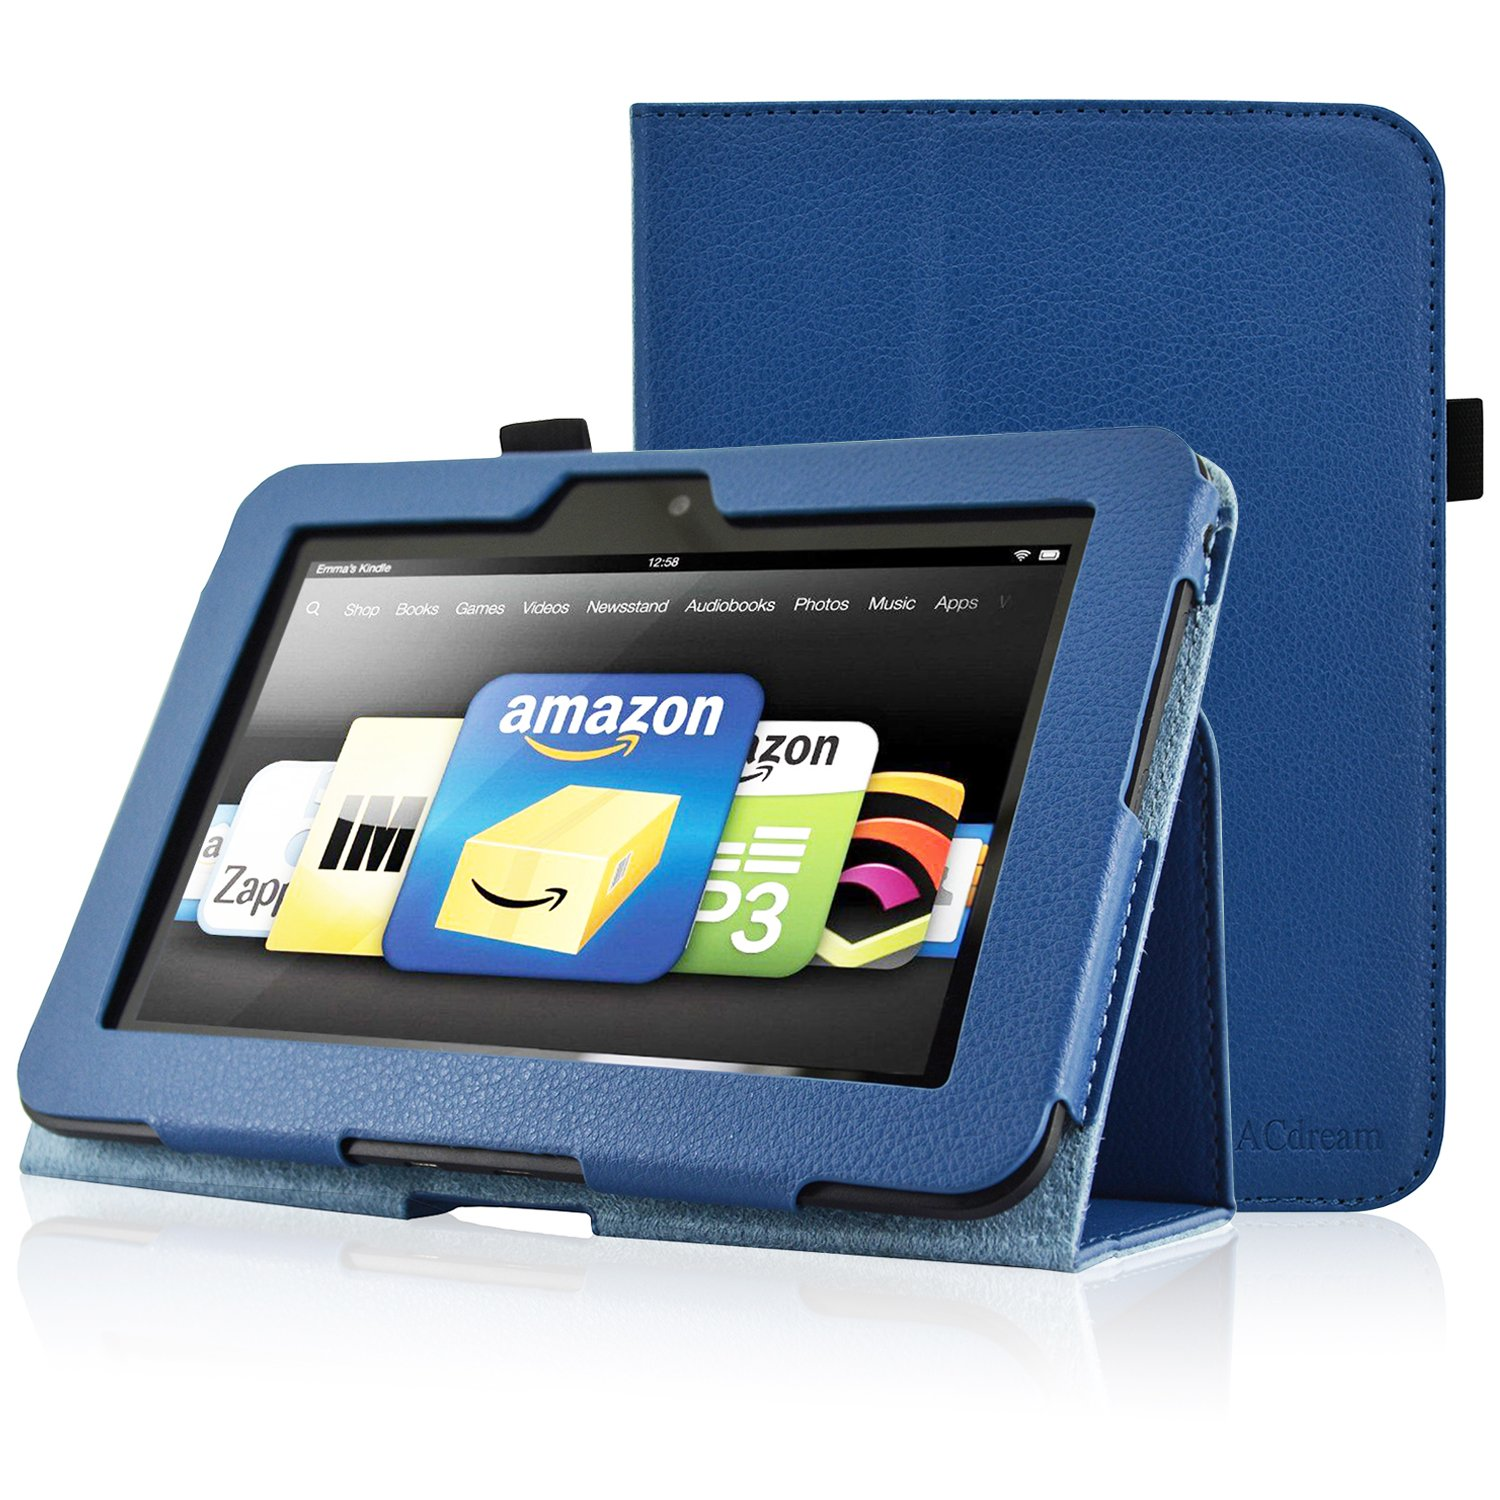 ACdream Kindle Fire HD 7 (2012 Version) Case, Amazon Kindle Fire HD7 (2012 Previous Model) Case - PU Leather Cover Case for Kindle Fire HD 7(2012 Version) with Auto Sleep Wake Function, Dark Blue